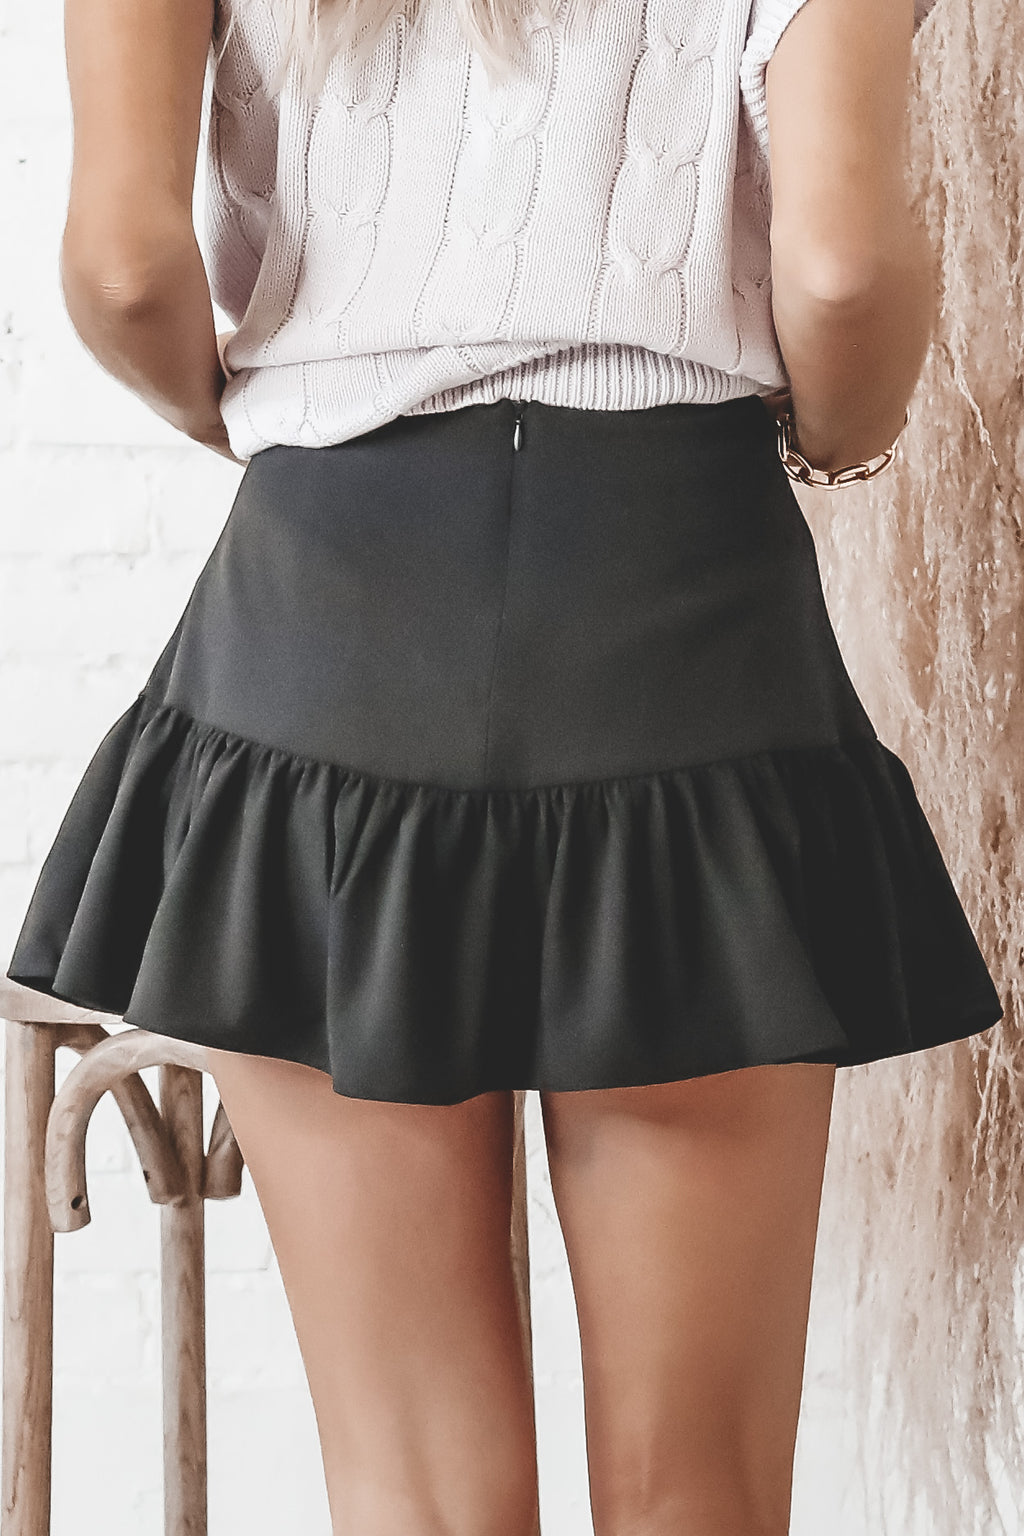 Wine On Me Black Ruffle Skort